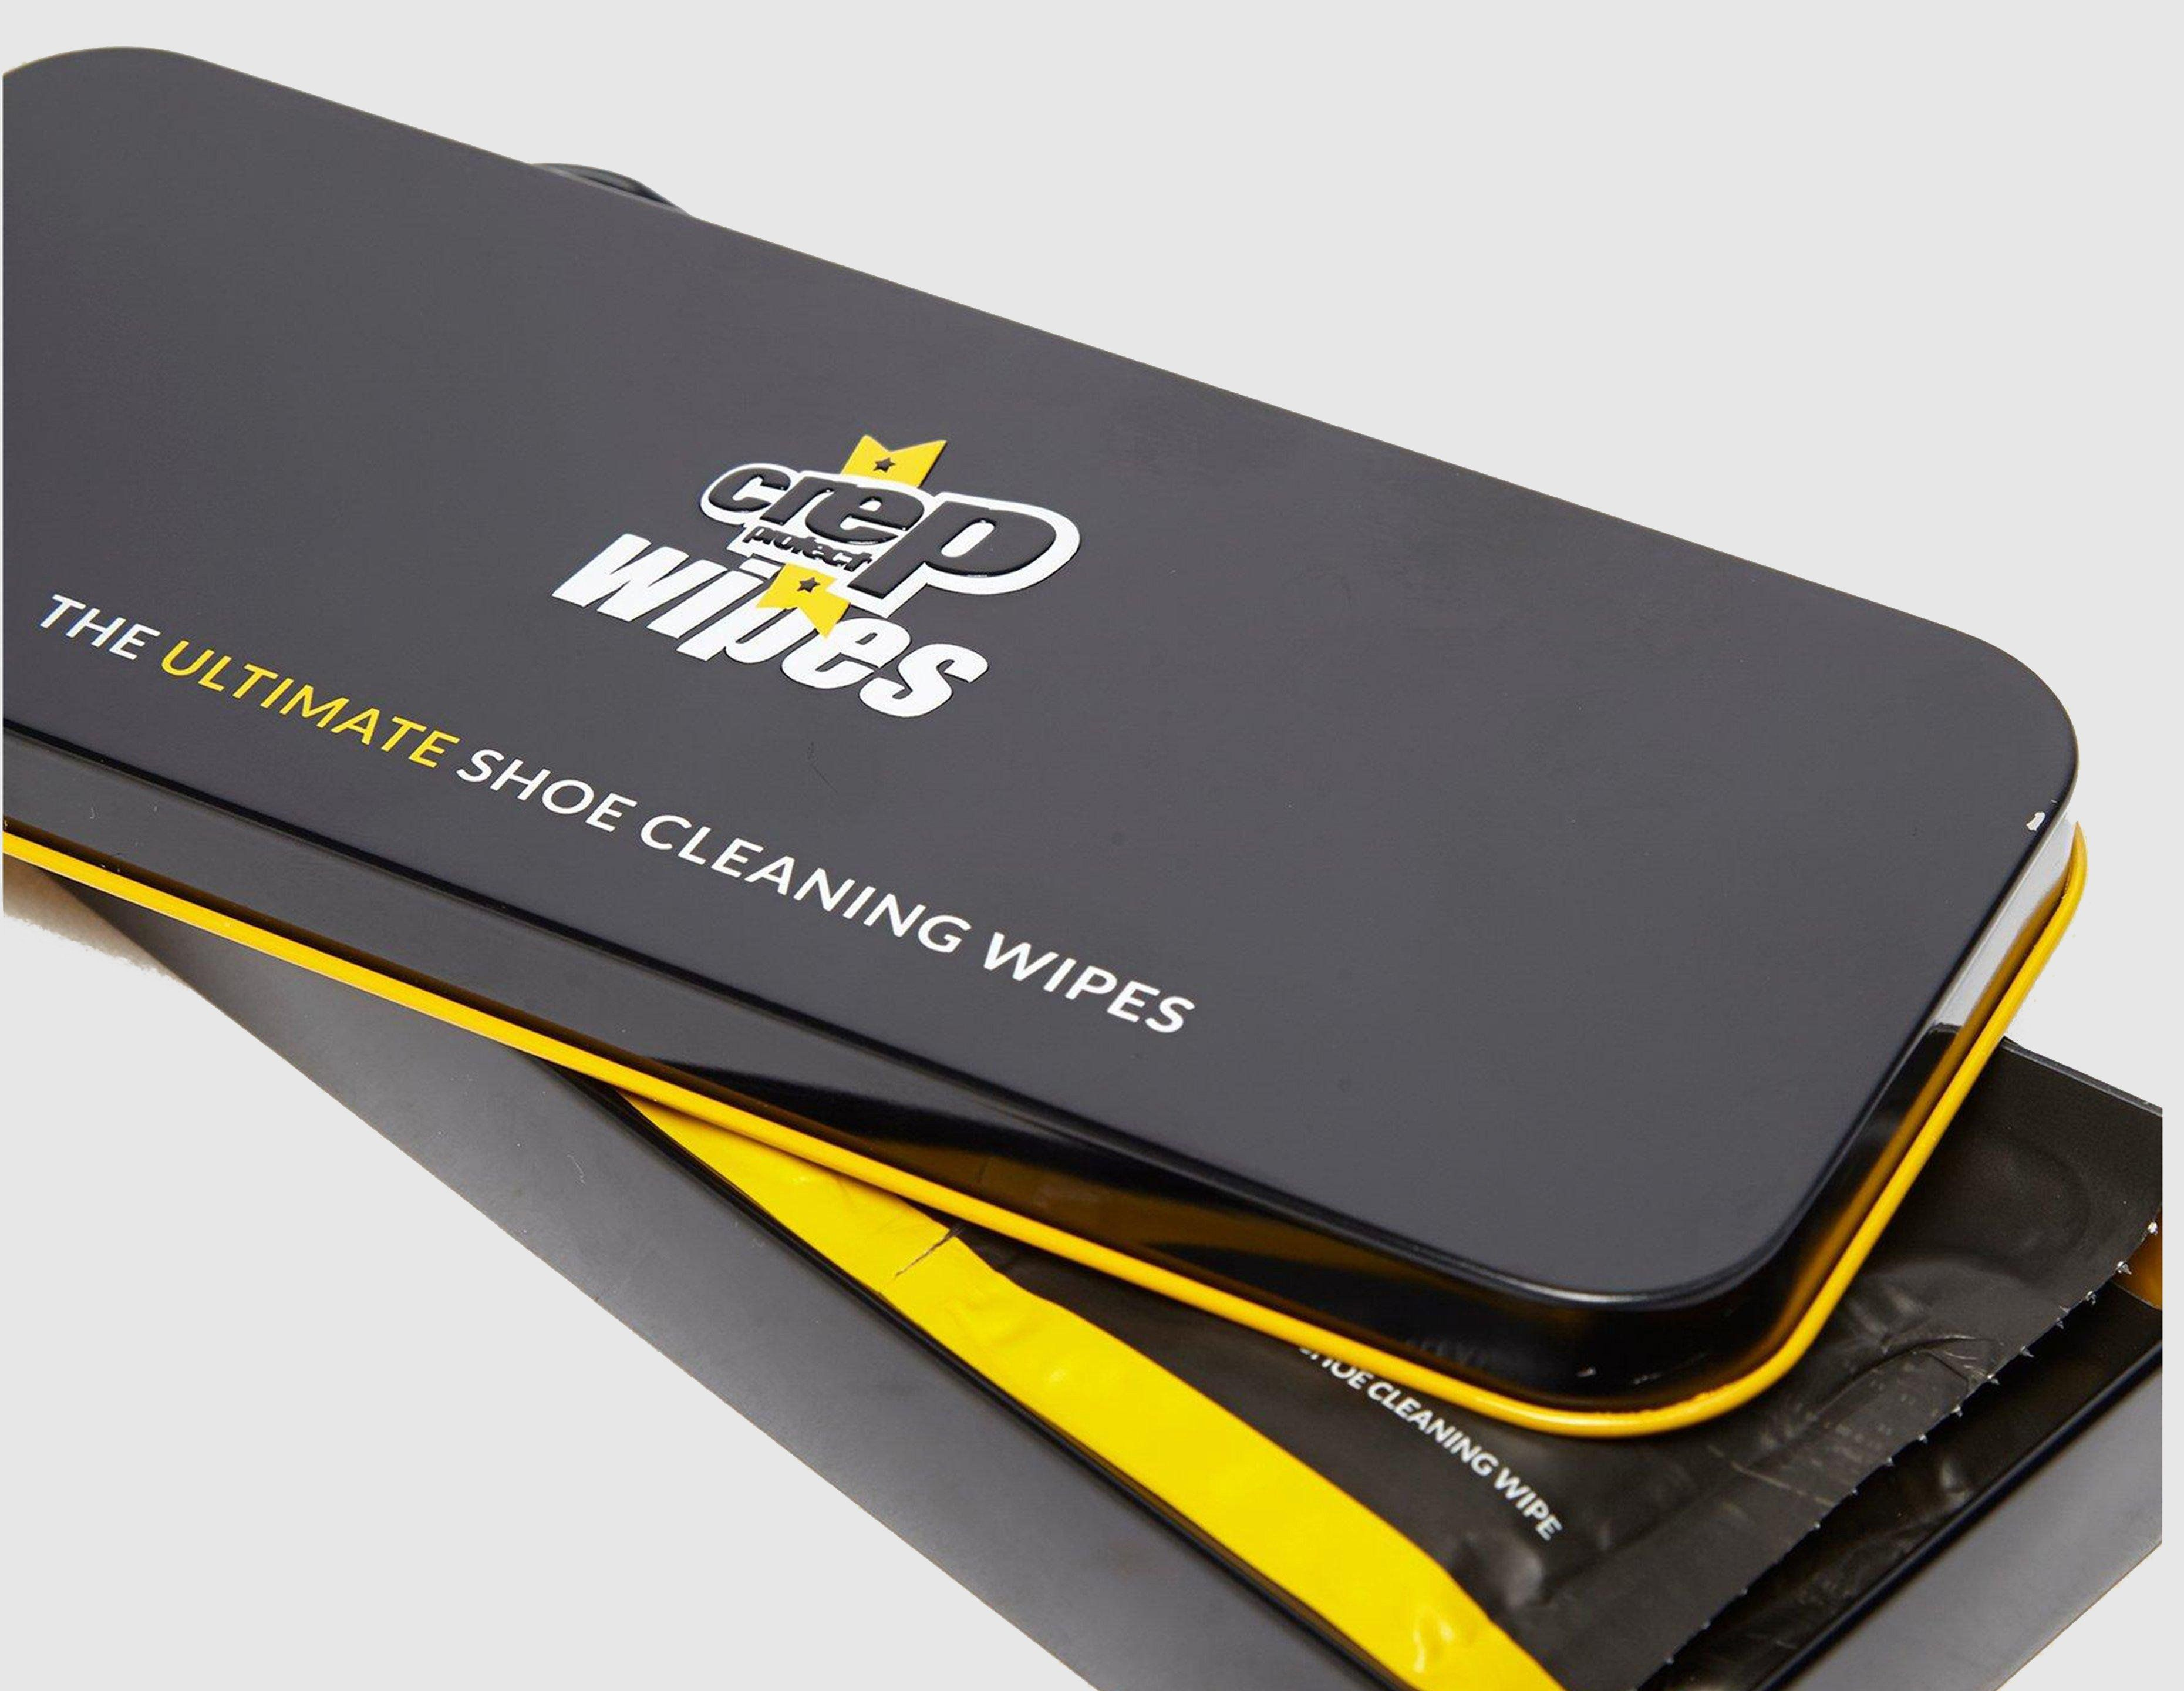 Crep Protect Shoe Cleaning Wipes - 12 Pack